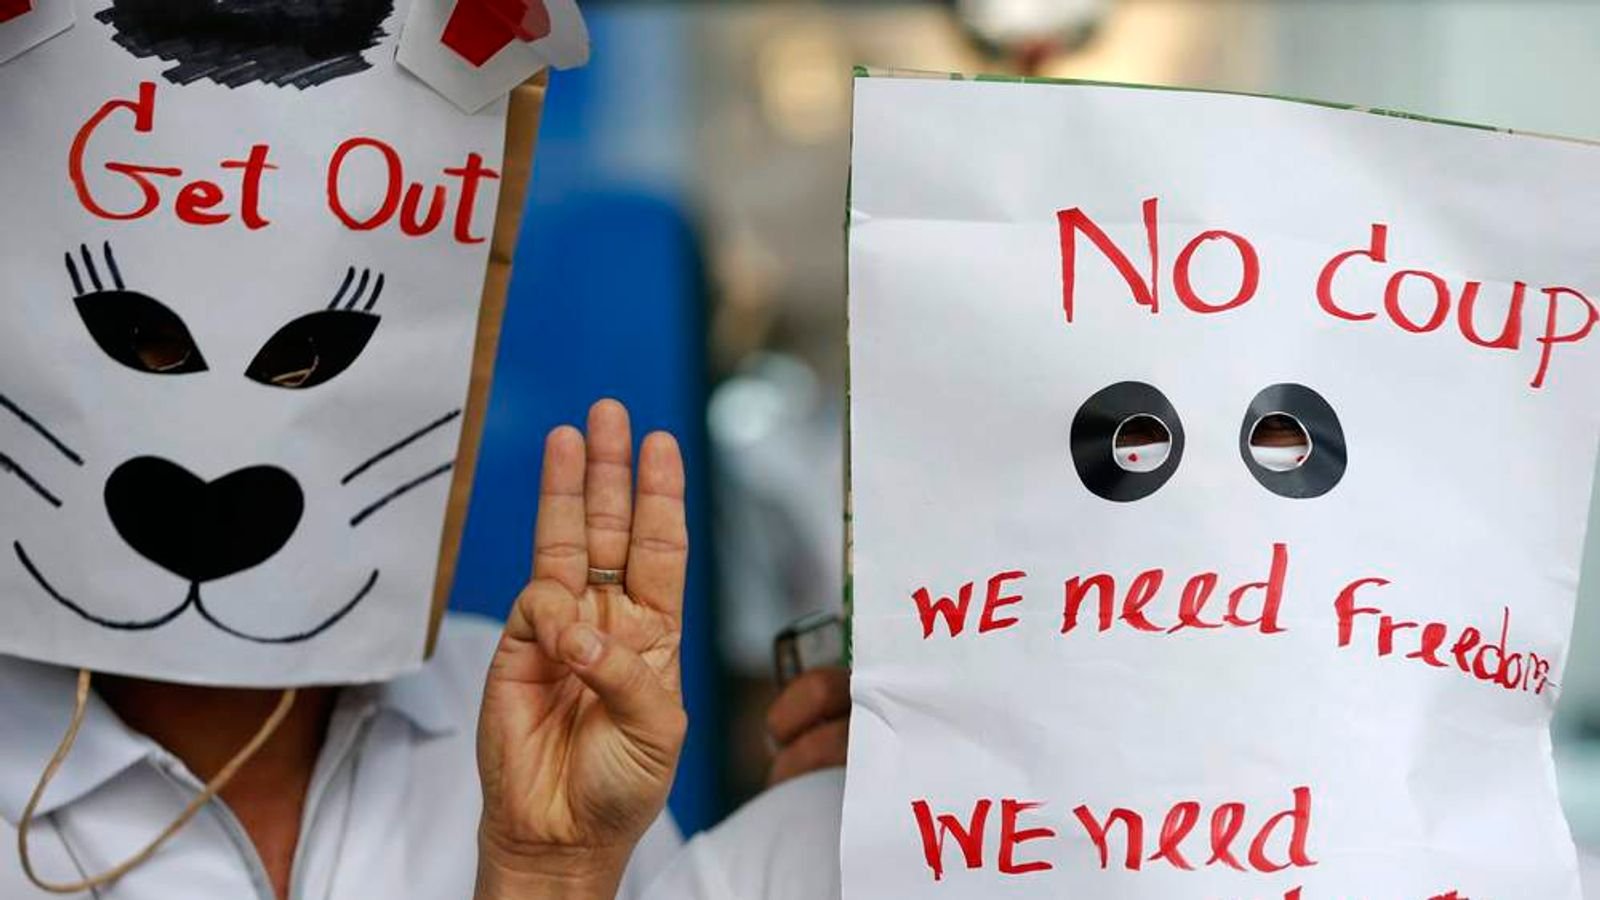 Anti-coup protesters wear paper bags with messages written on them and flash a three finger sign during a protest at a shopping mall in Bangkok